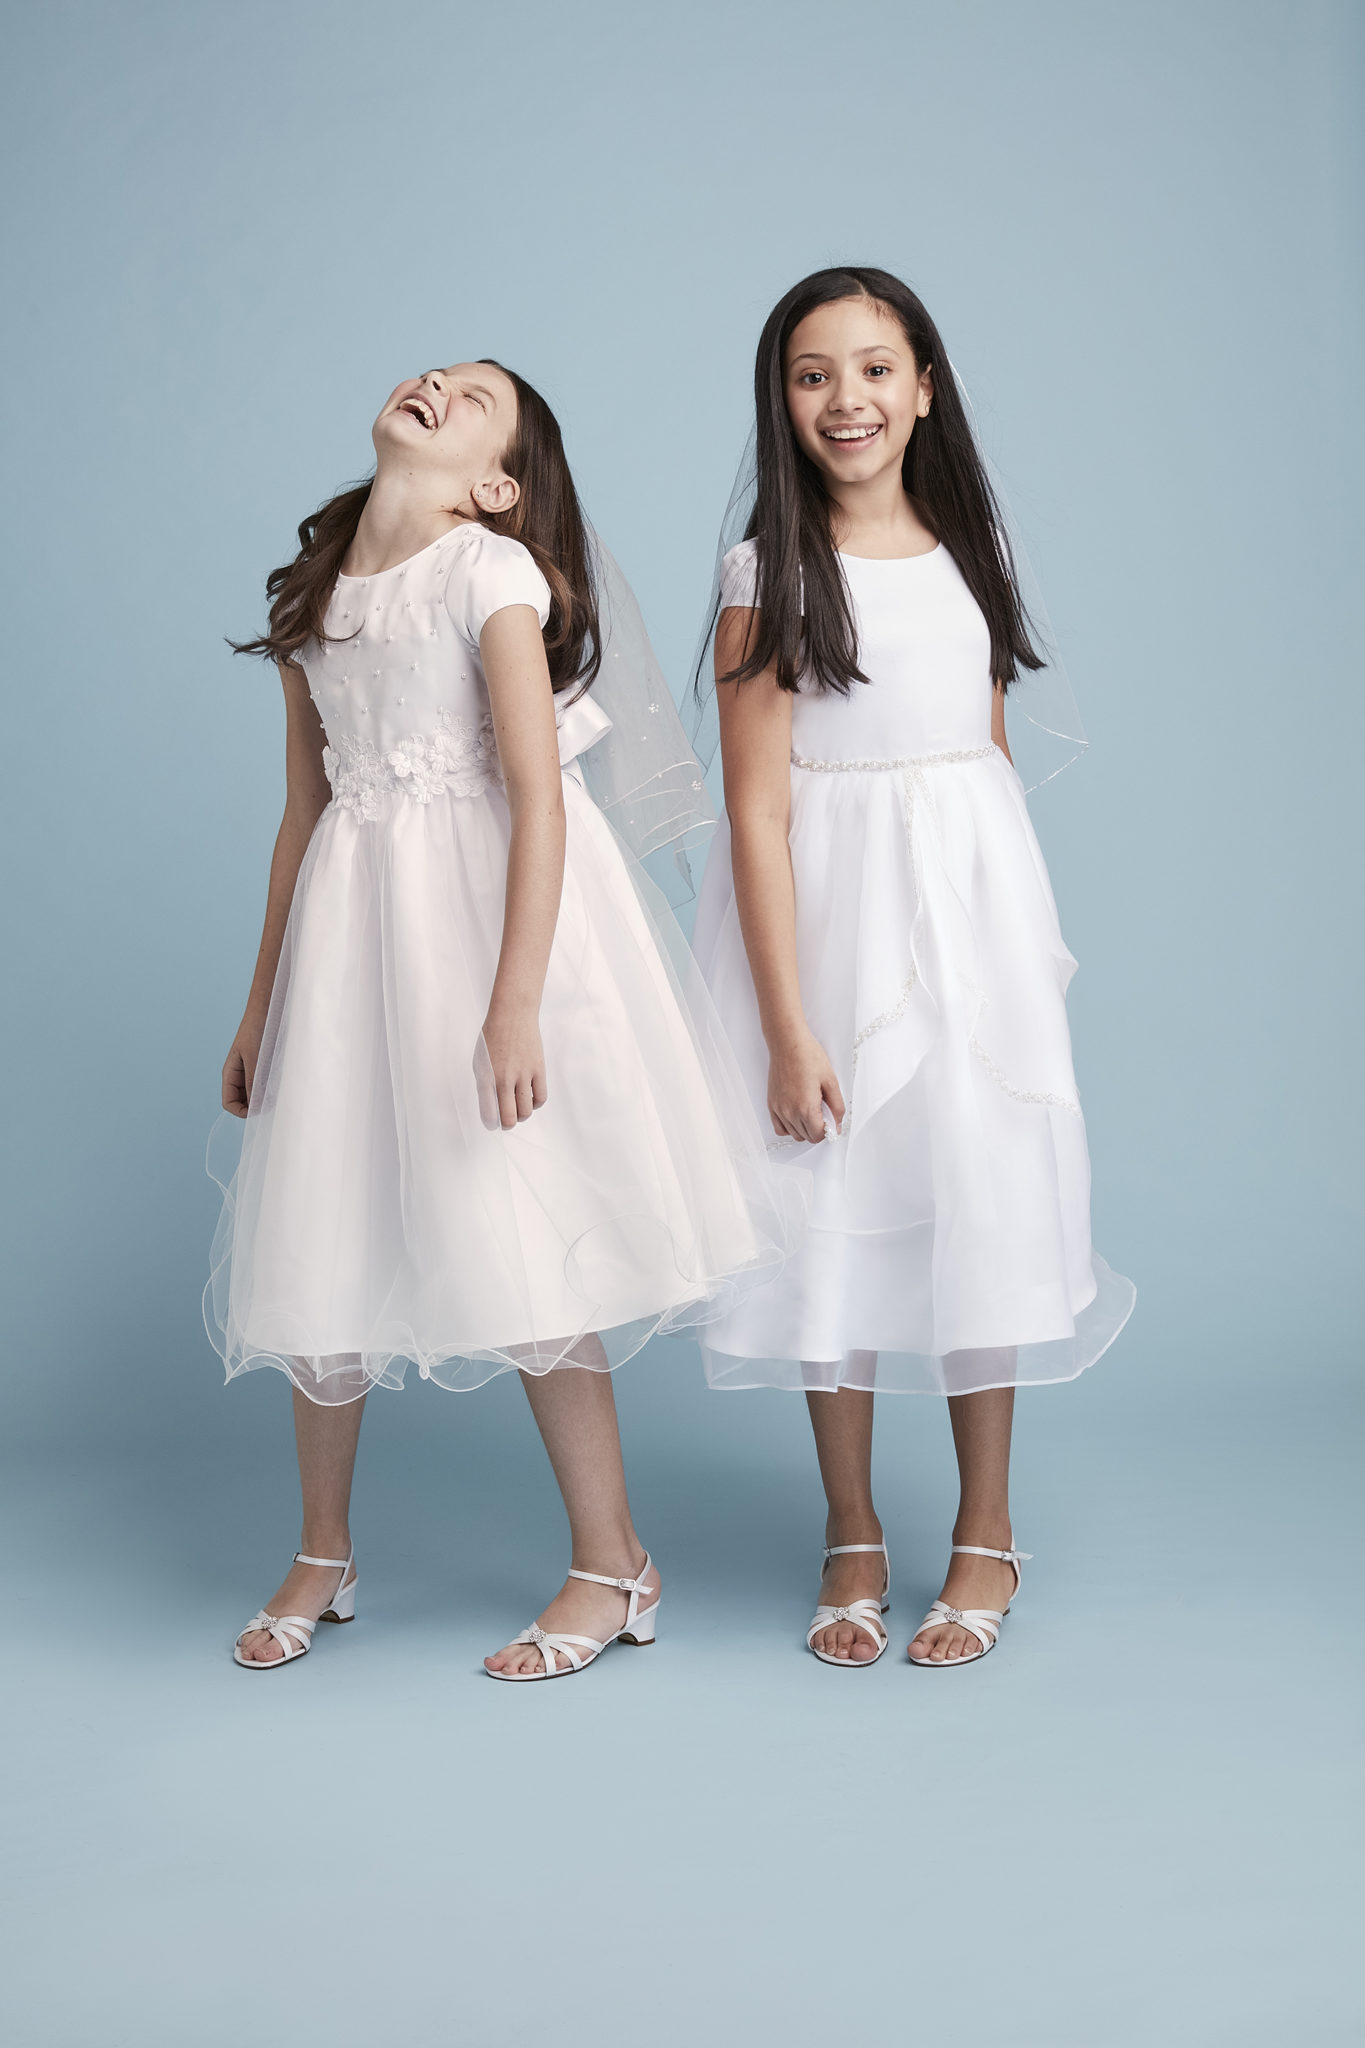 Two girls smiling in communion dresses from David's Bridal